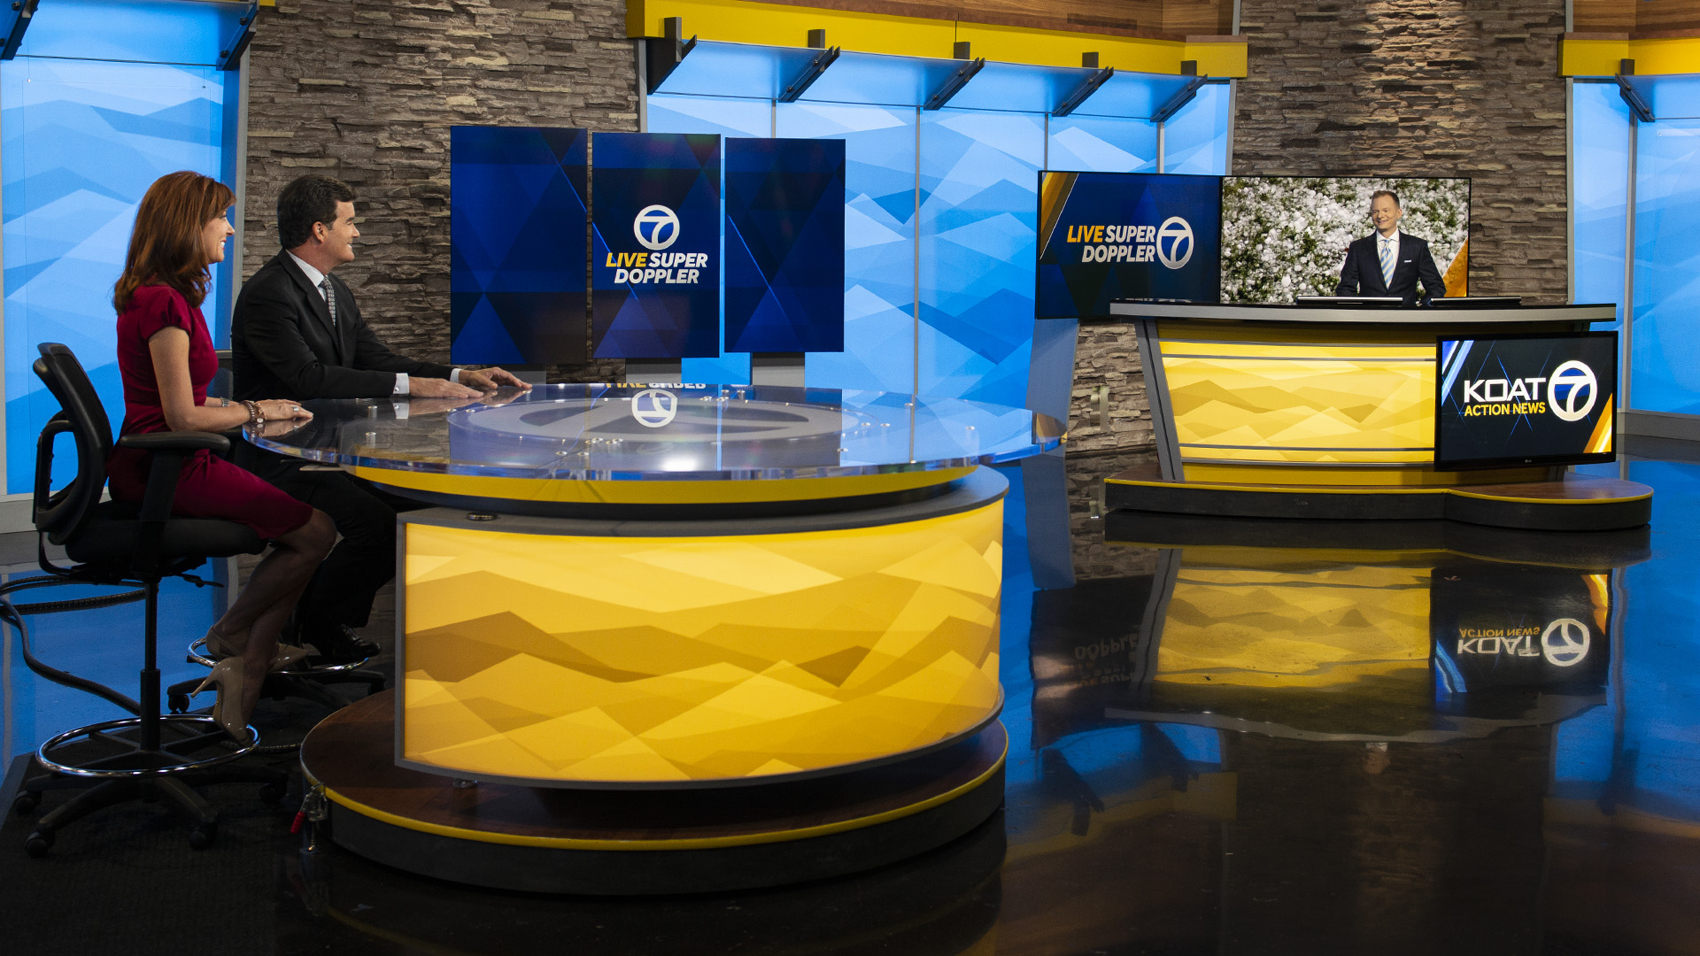 ncs_KOAT-TV-Studio-Devlin_00003